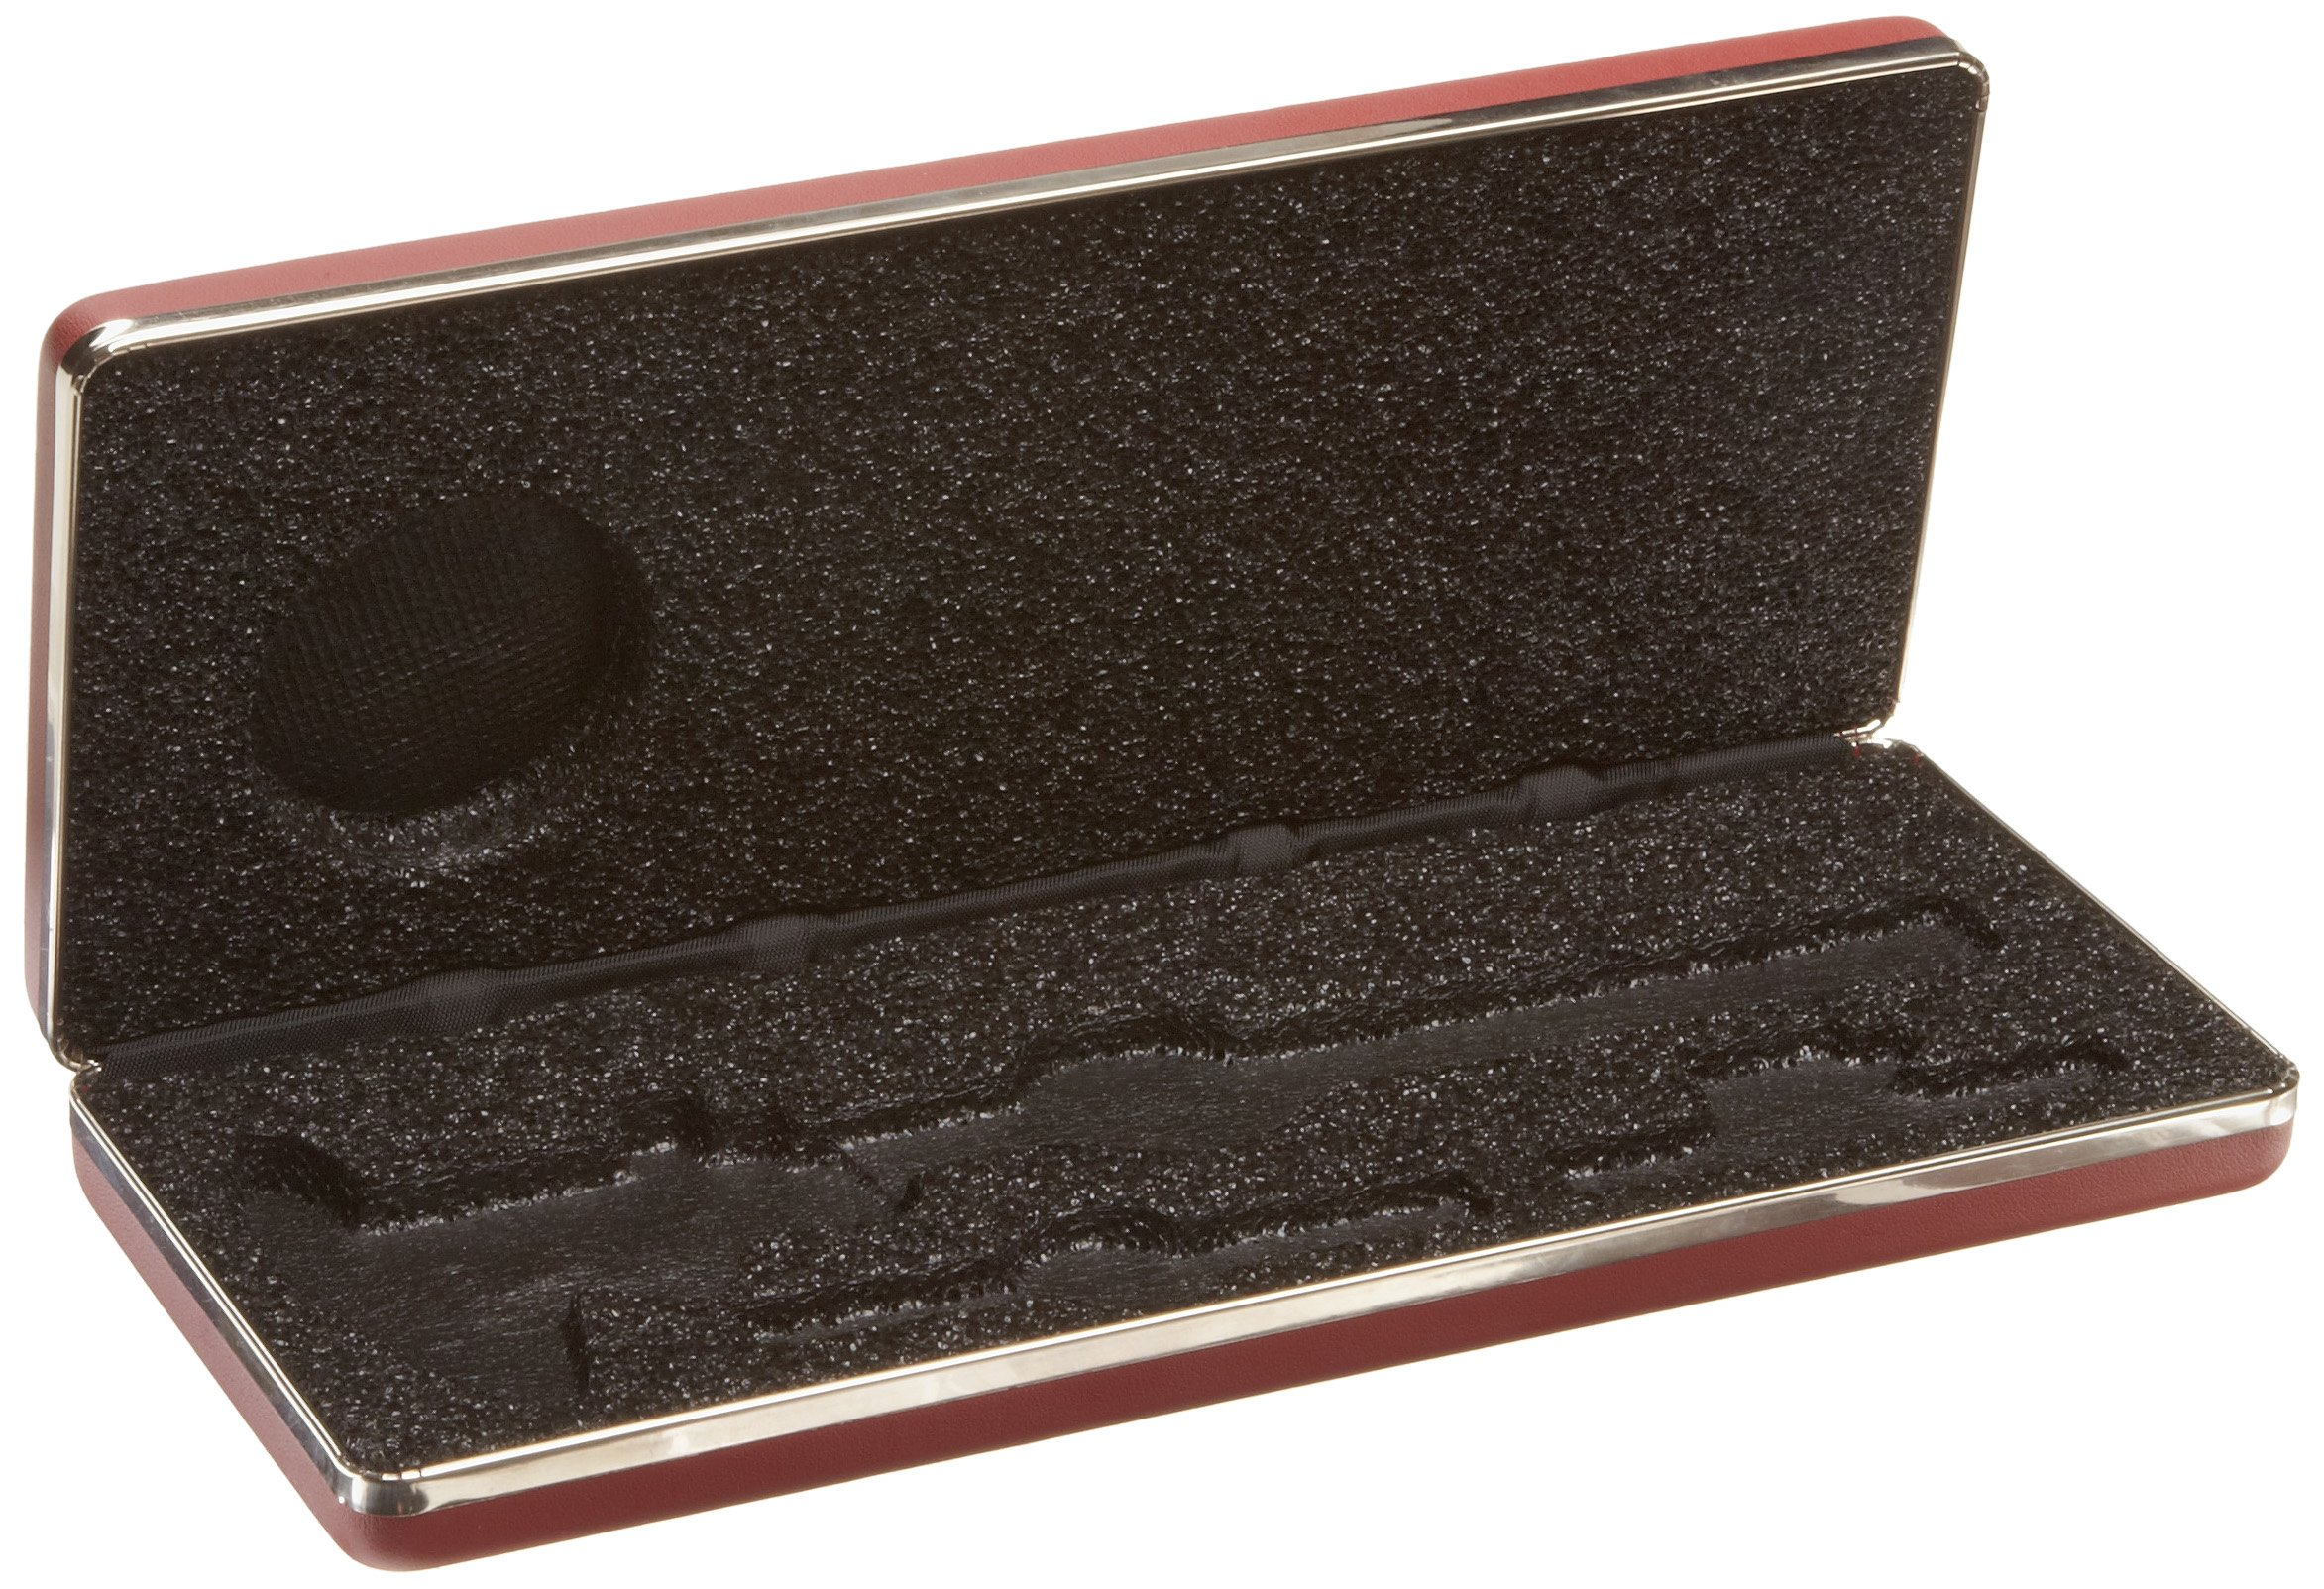 Starrett 943 Deluxe Padded Case For 6''/150mm Dial Caliper